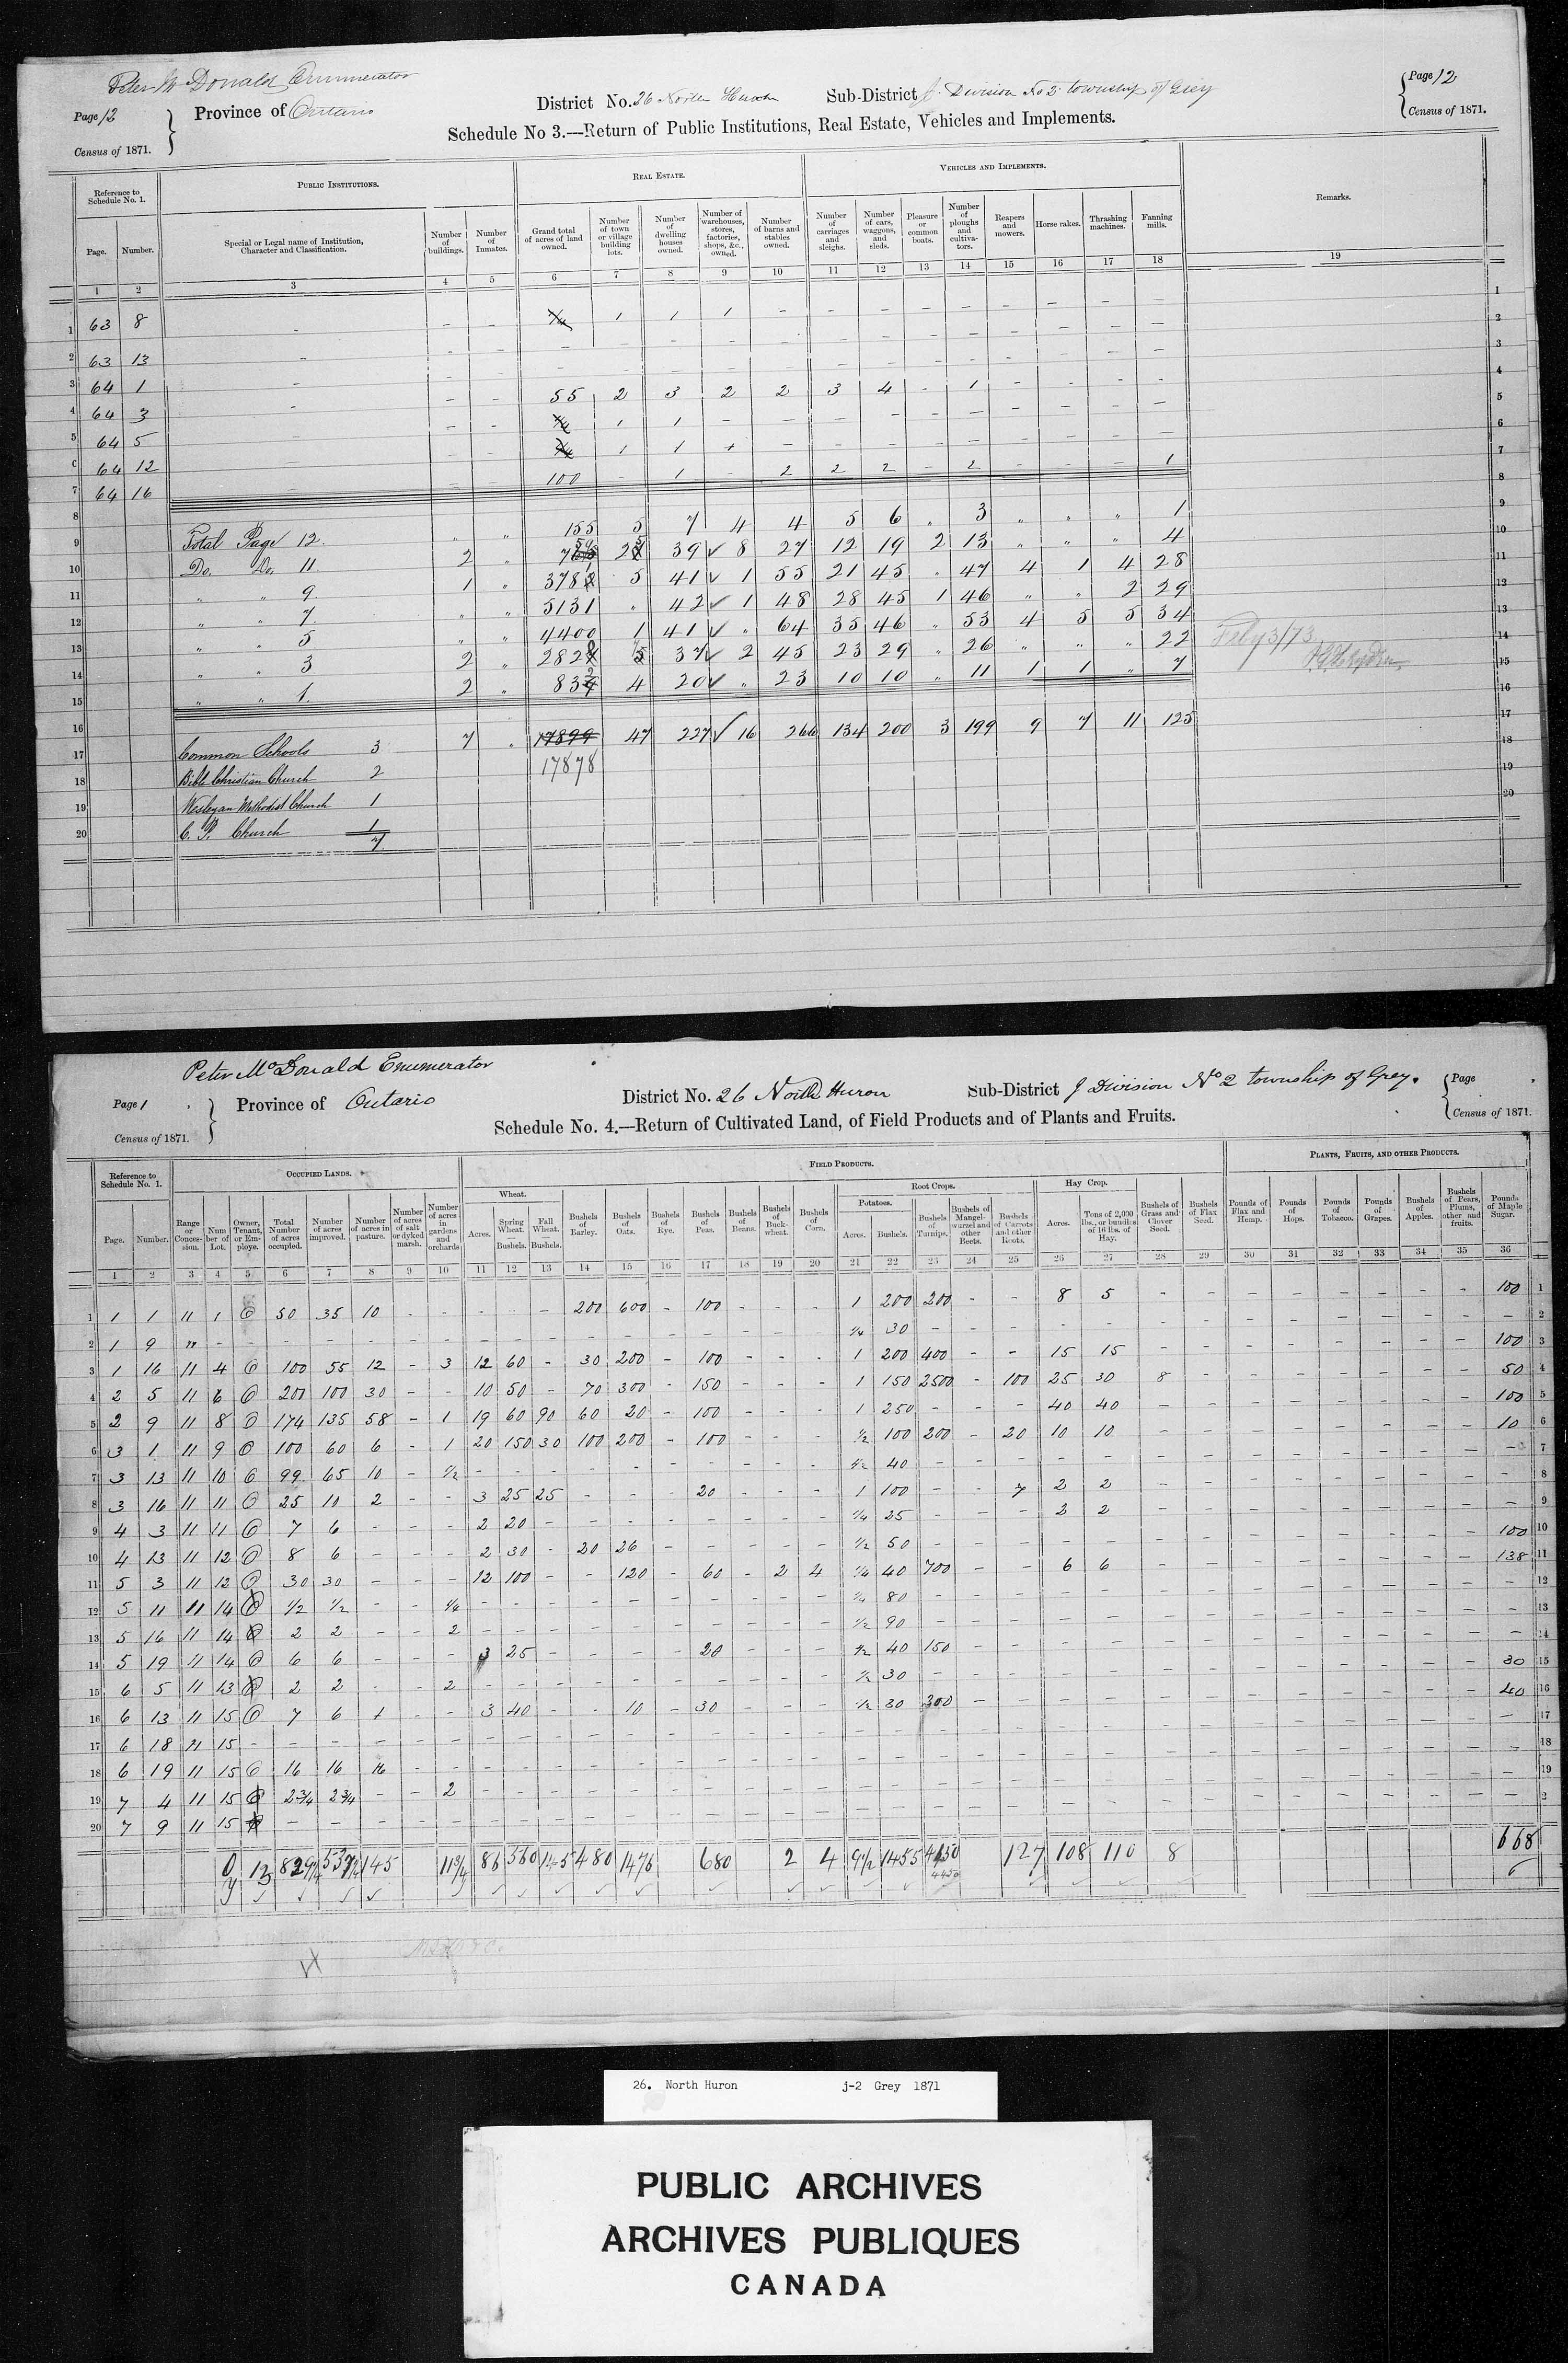 Title: Census of Canada, 1871 - Mikan Number: 142105 - Microform: c-9932